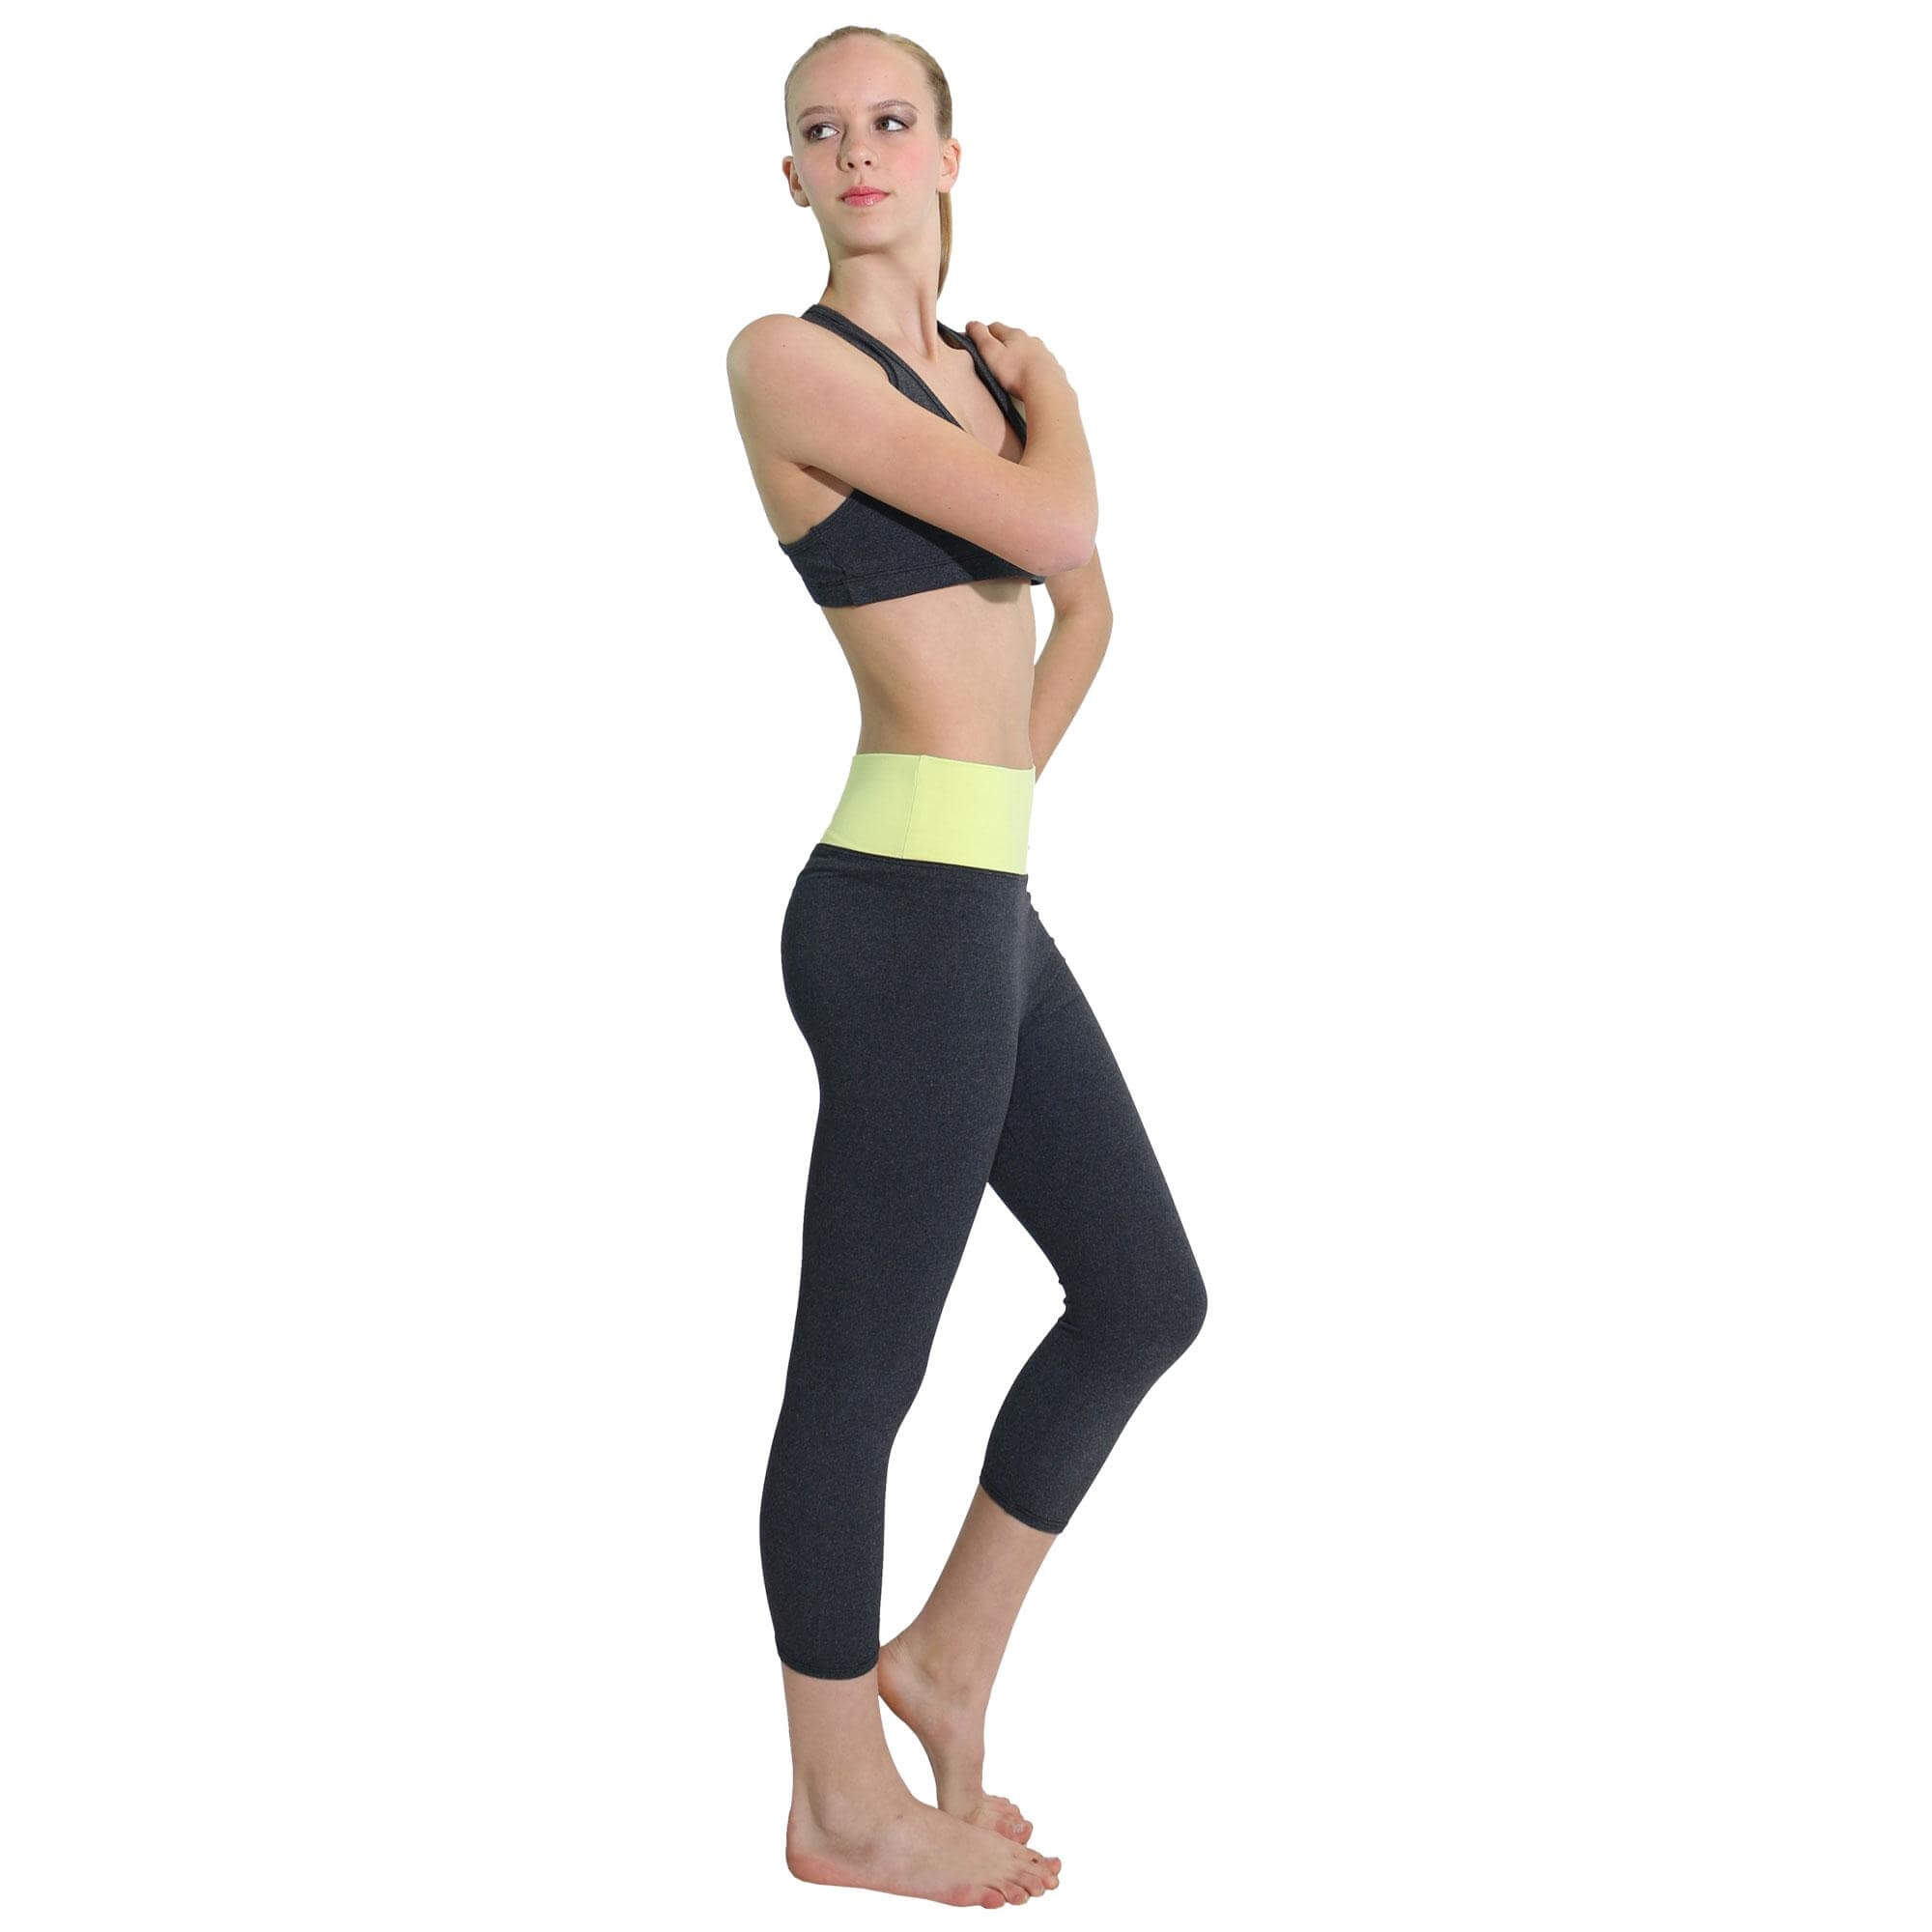 Suede Supplex Tranquility Capri Legging - Click Image to Close